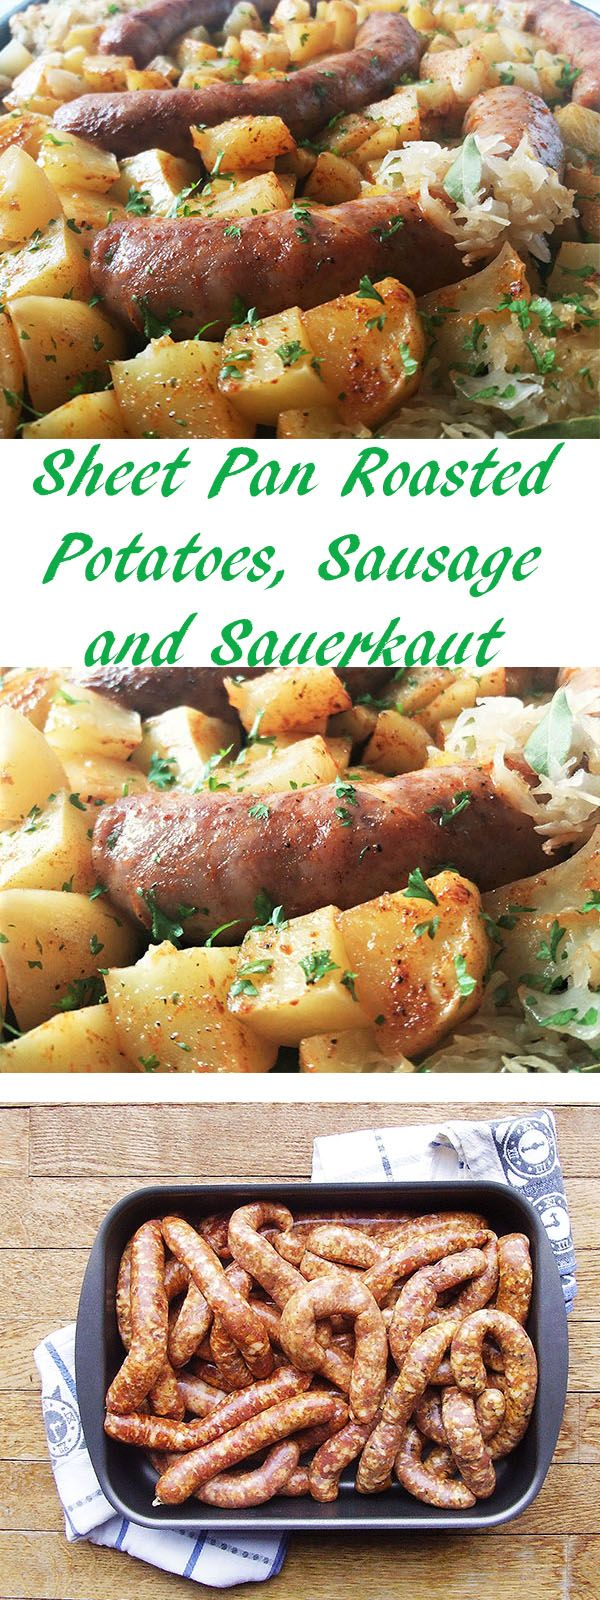 Sheet Pan Roasted Potatoes, Sausage and Sauerkraut: baked slowly while bathed in beer …